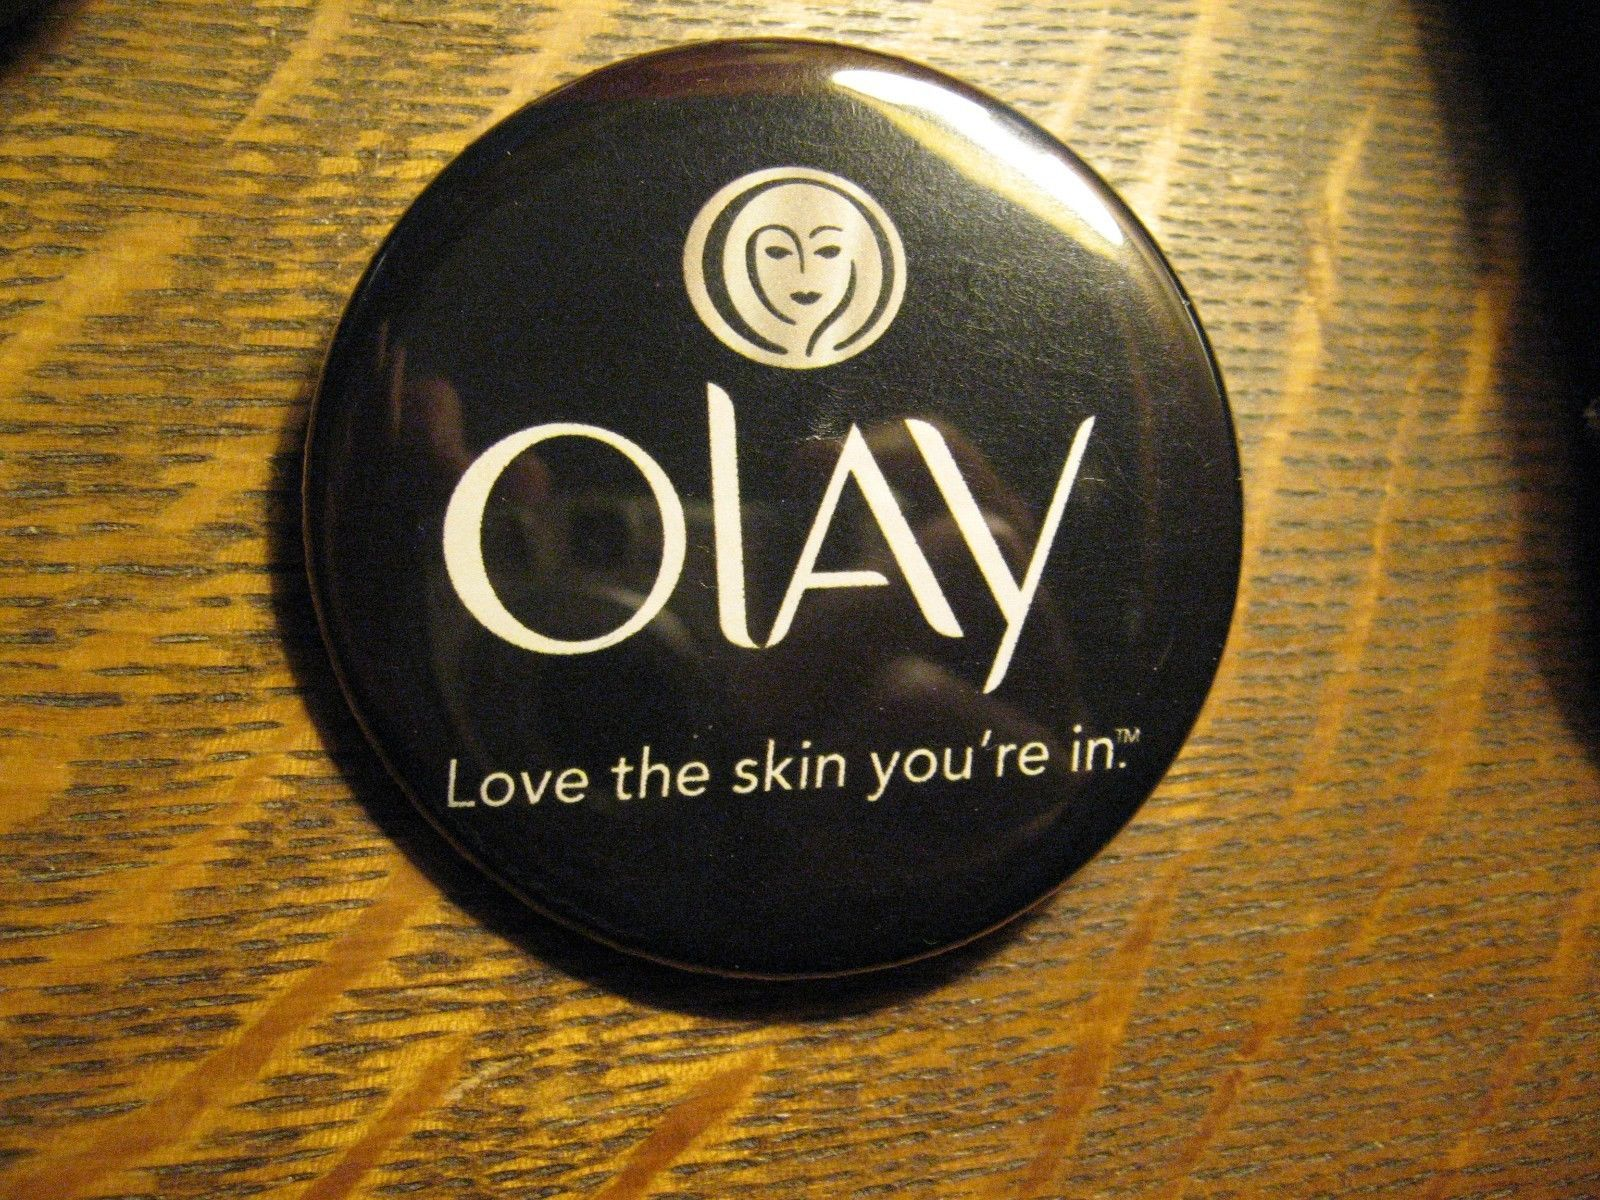 Oil Of Olay Love The Skin You Re In Logo Advertisement Pocket Lipstick Mirror